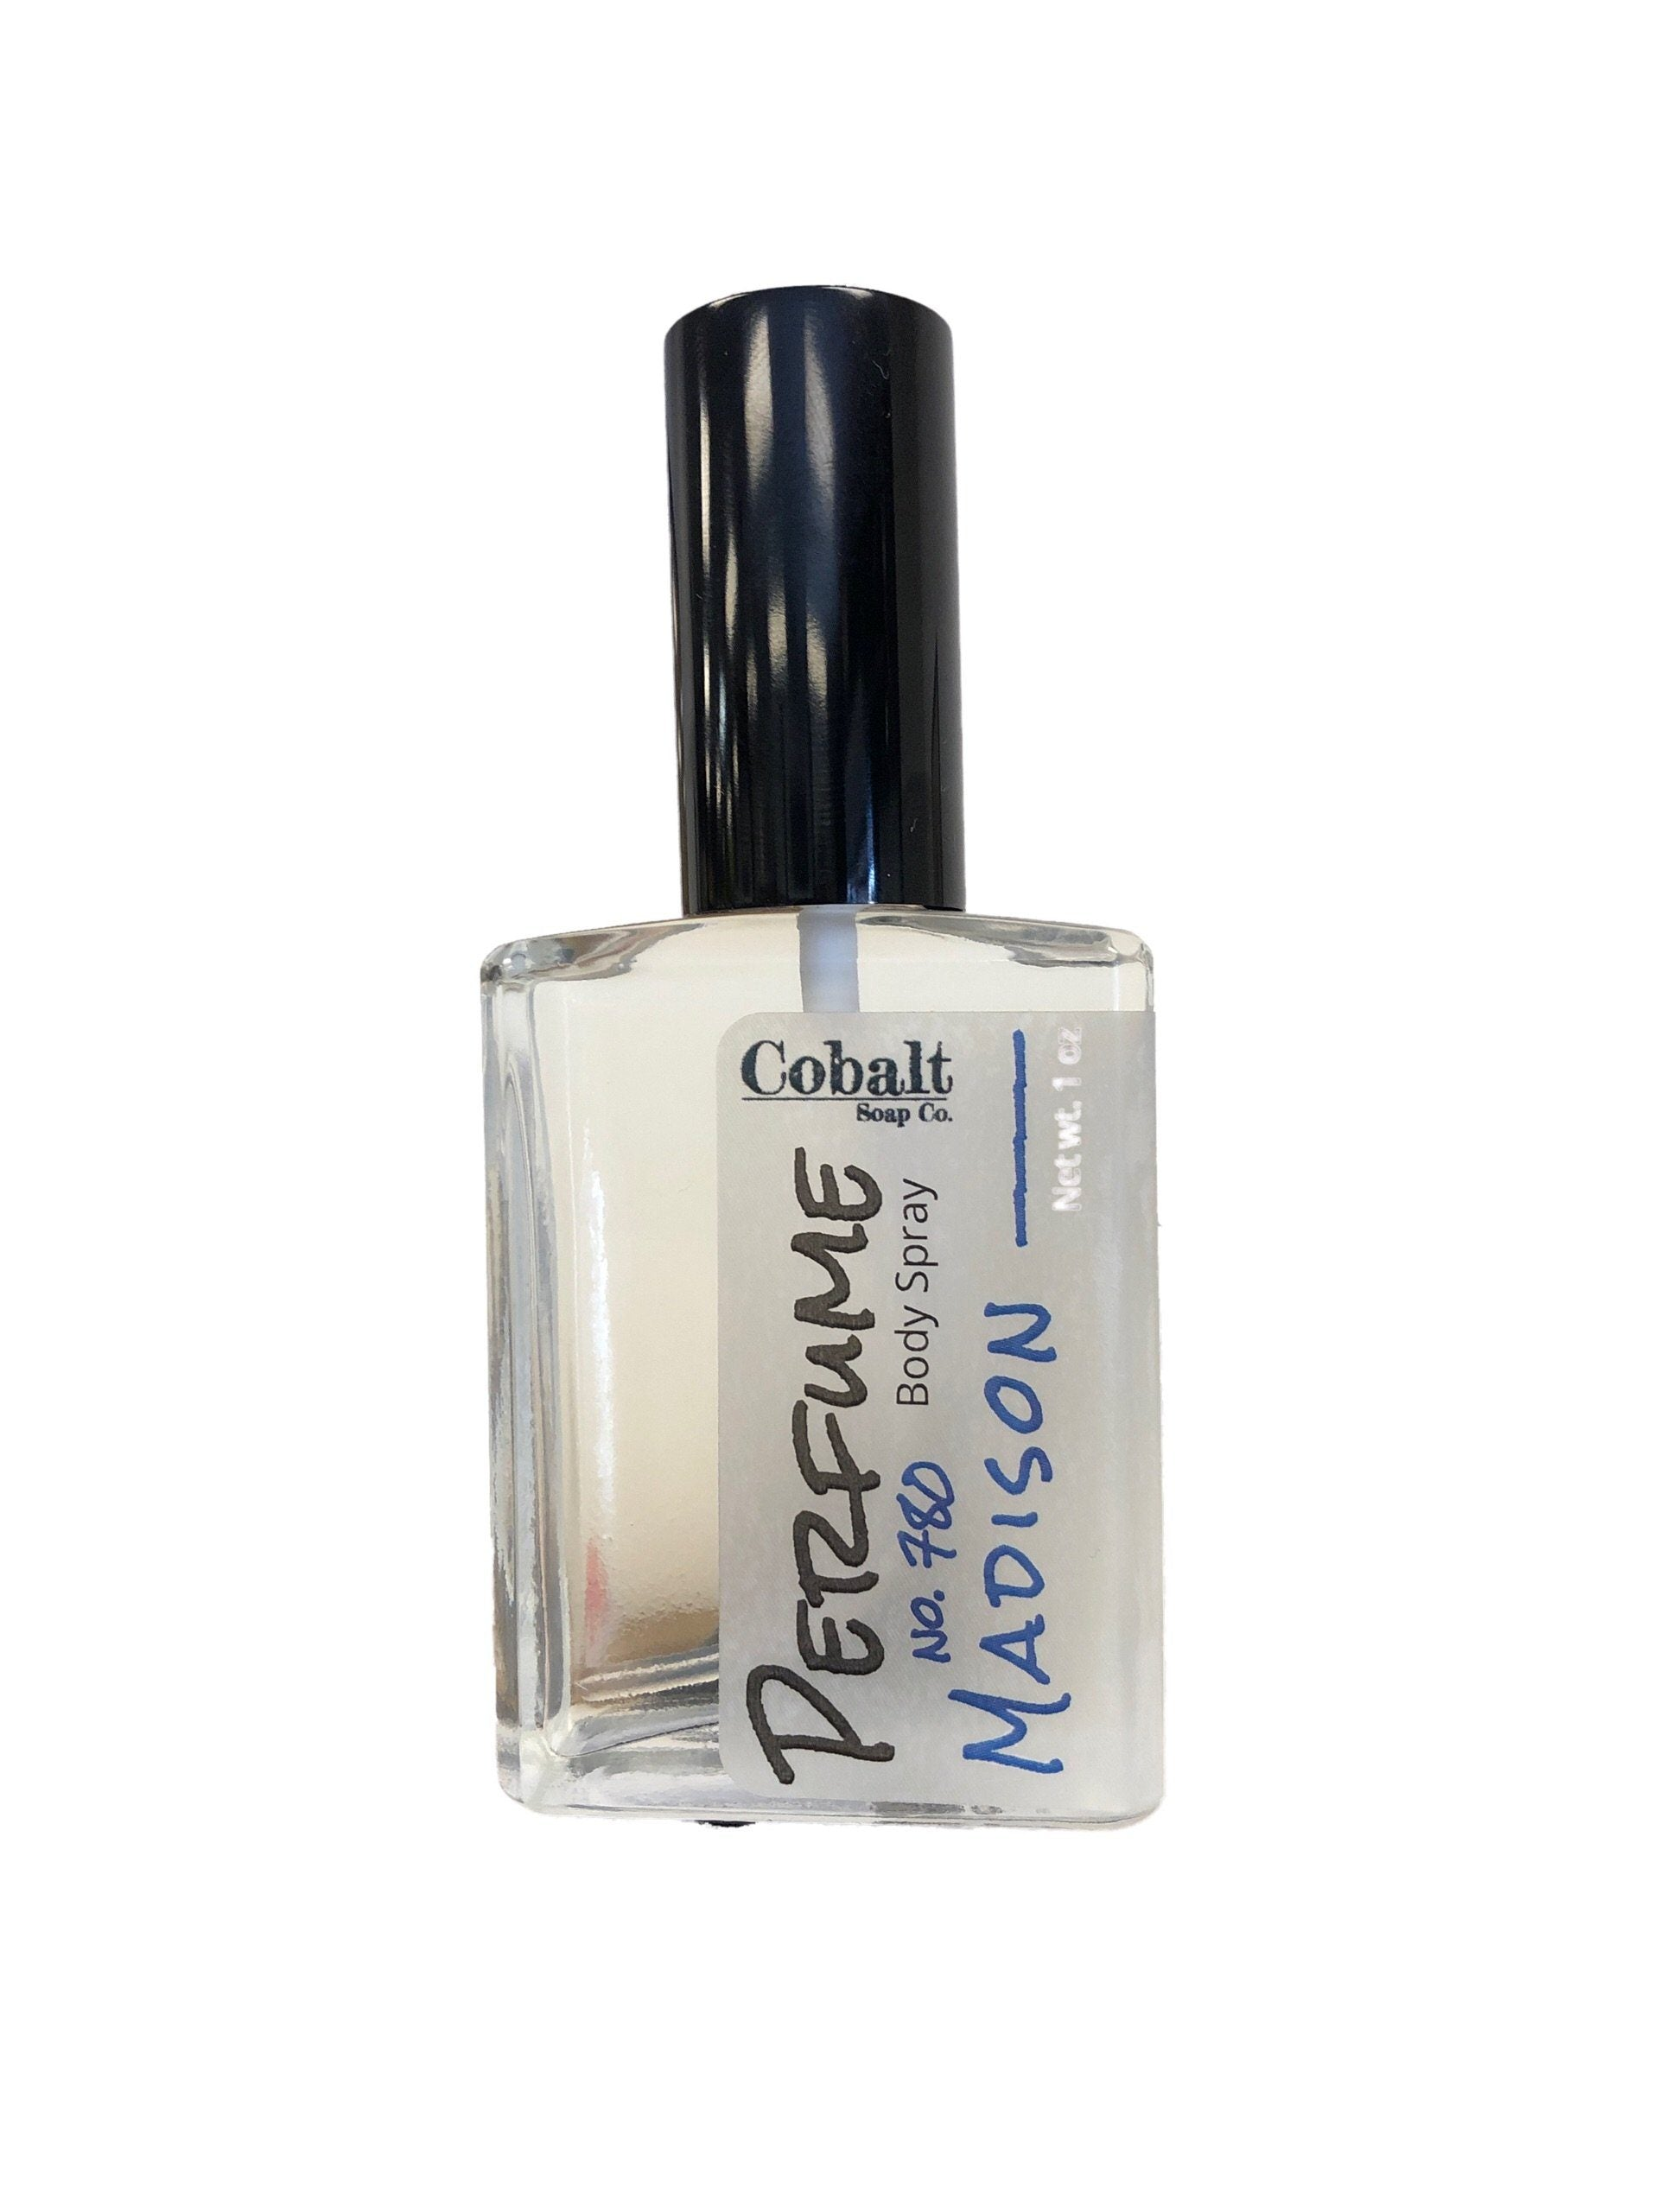 Cobalt Soap Co. Perfume Body Spray